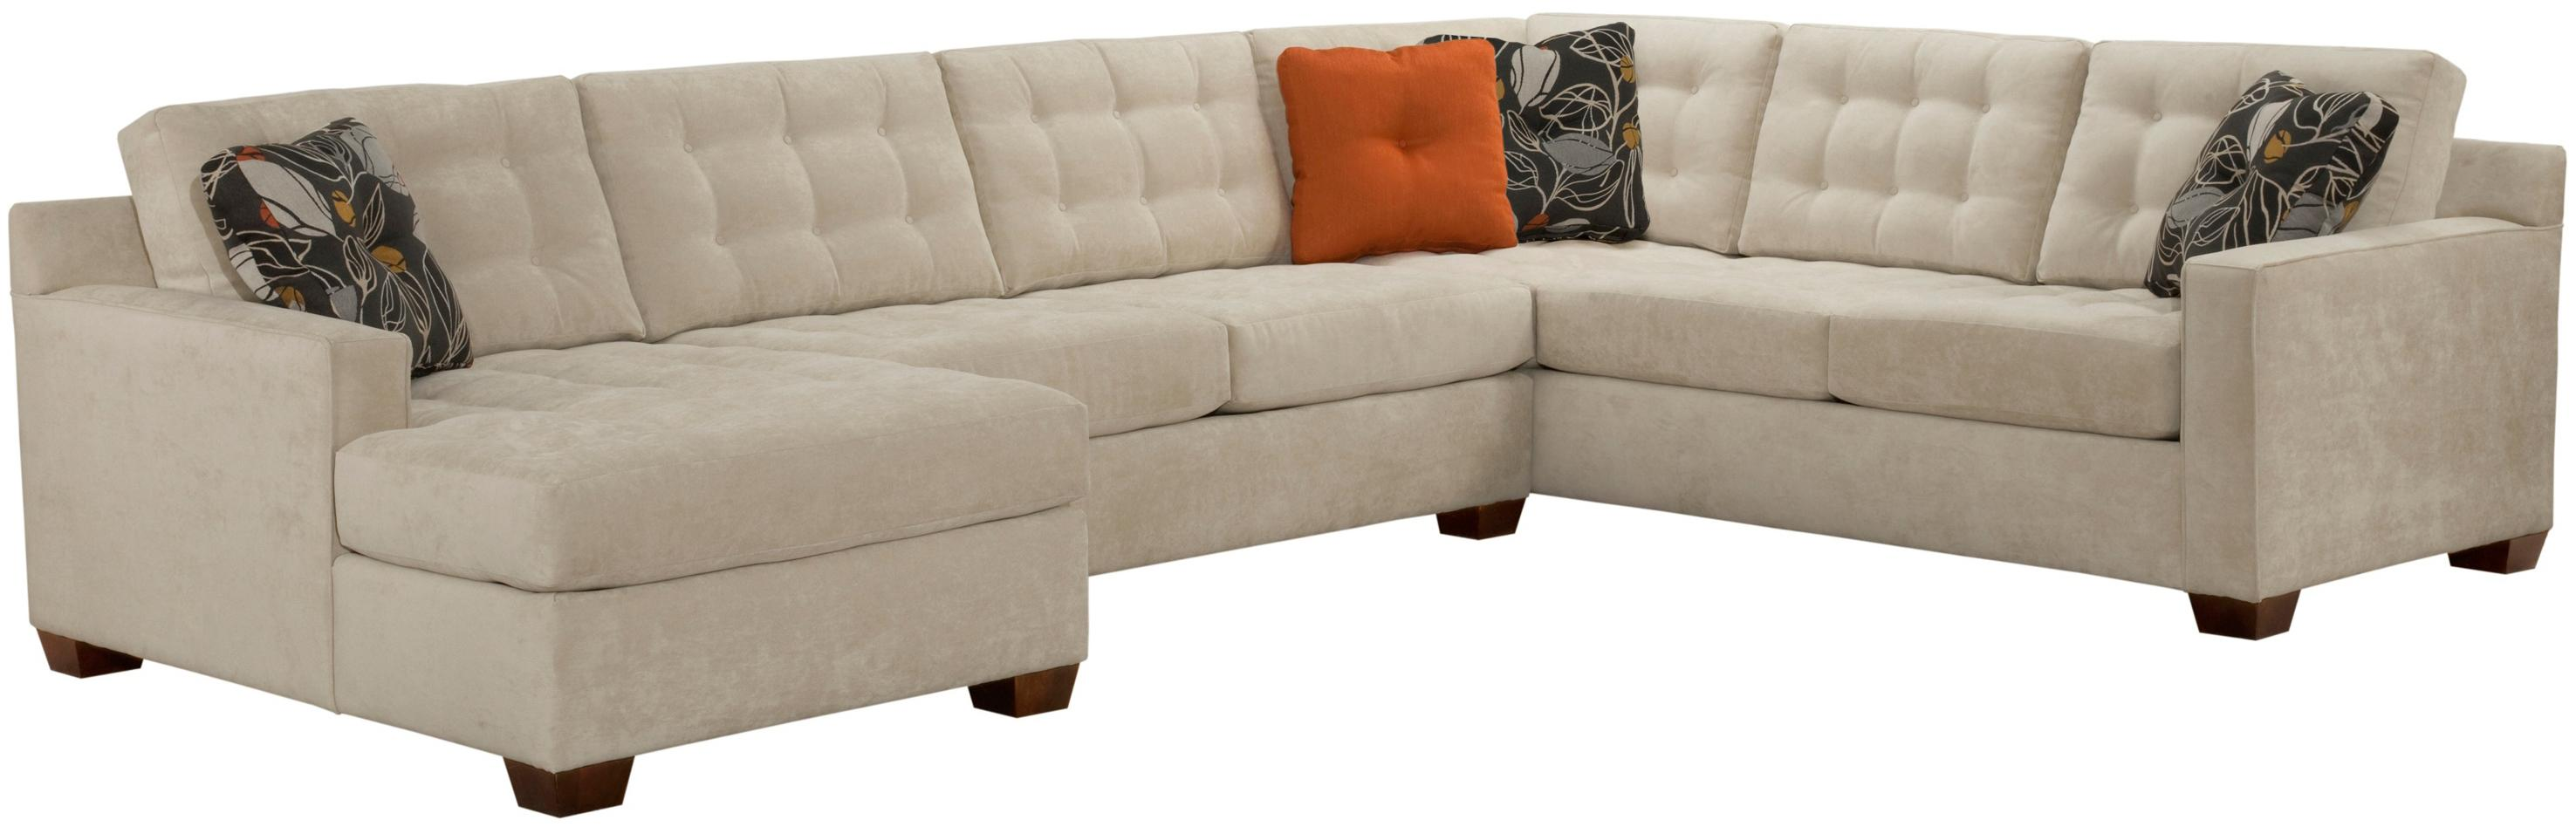 Broyhill Furniture Tribeca Contemporary Sectional Sofa with Left Chaise - AHFA - Sofa Sectional Dealer Locator  sc 1 st  Furniture Dealer Locator - Find your furniture : tribeca sectional - Sectionals, Sofas & Couches